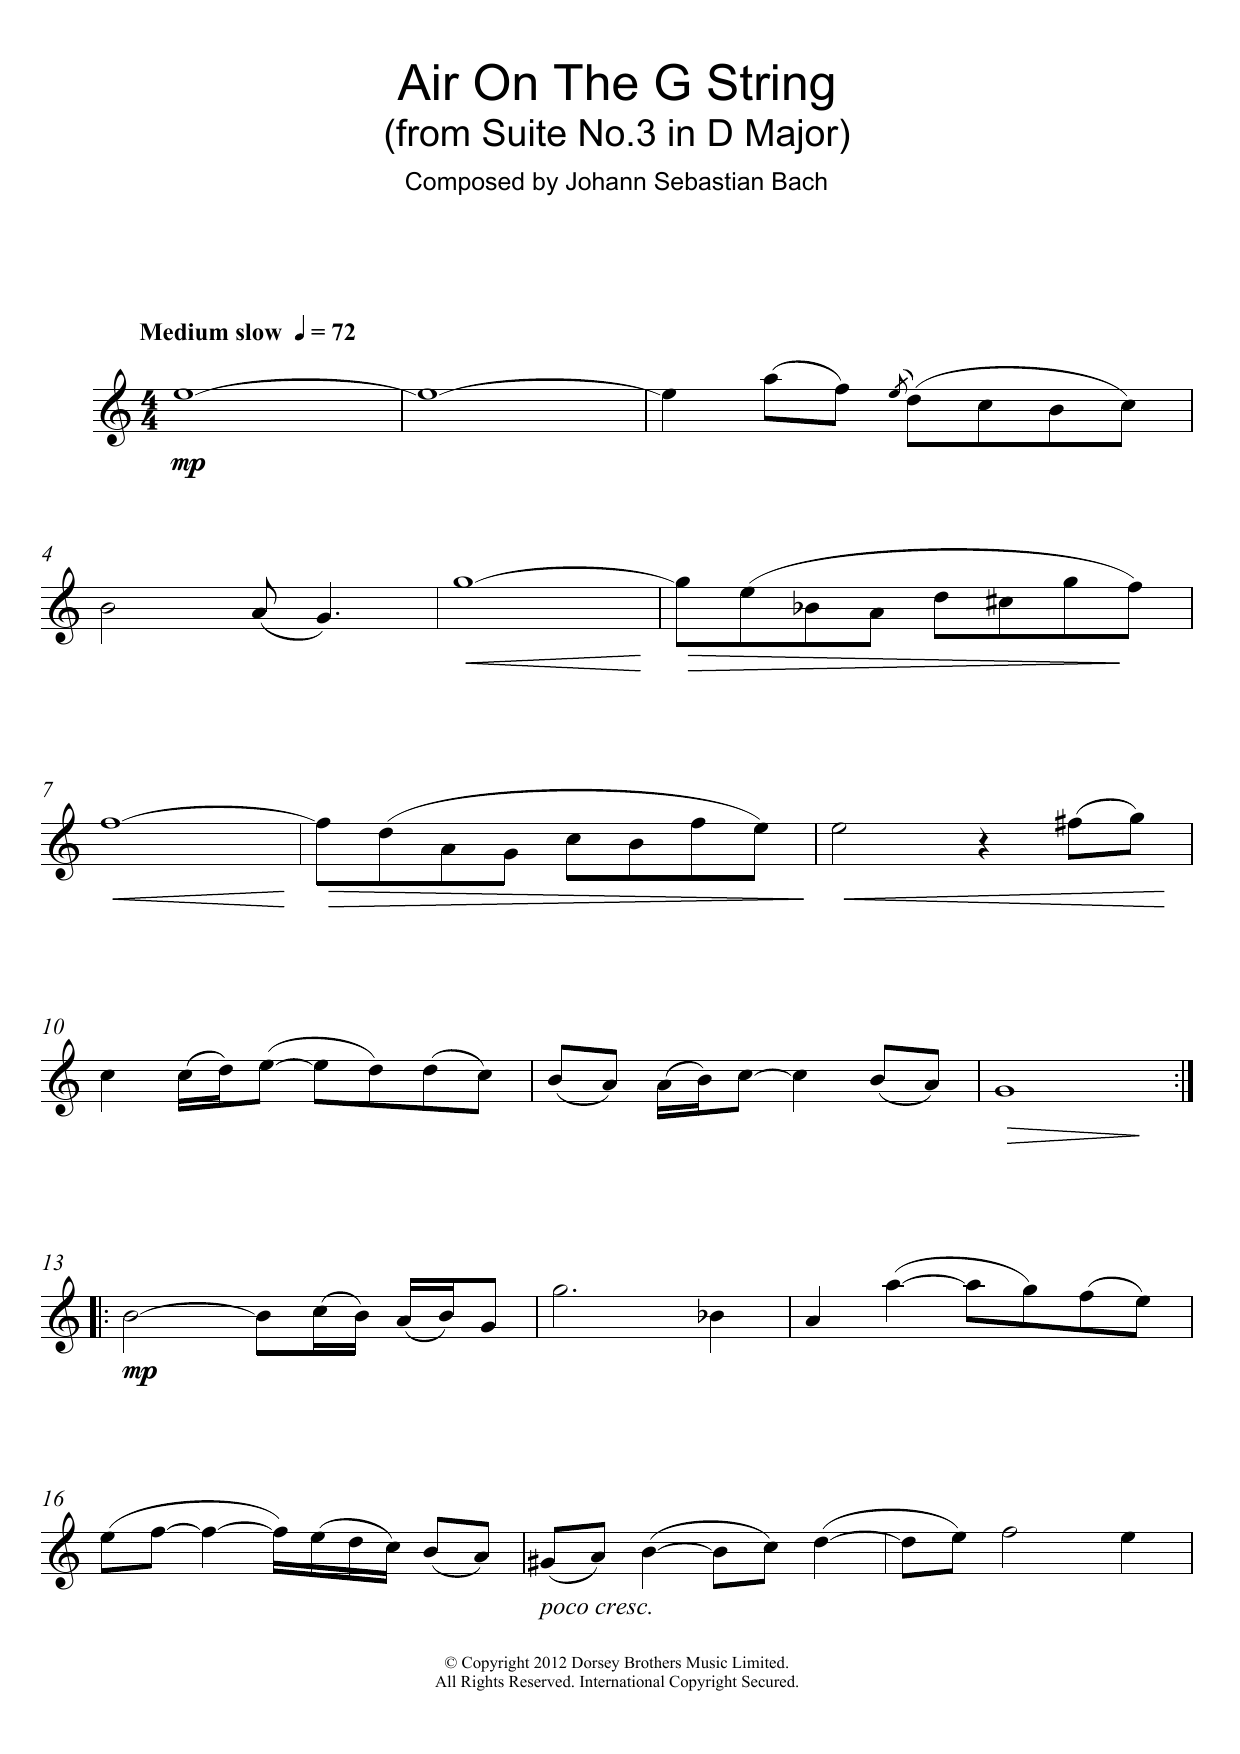 Air On The G String (from Suite No.3 in D Major) (Alto Sax Solo)